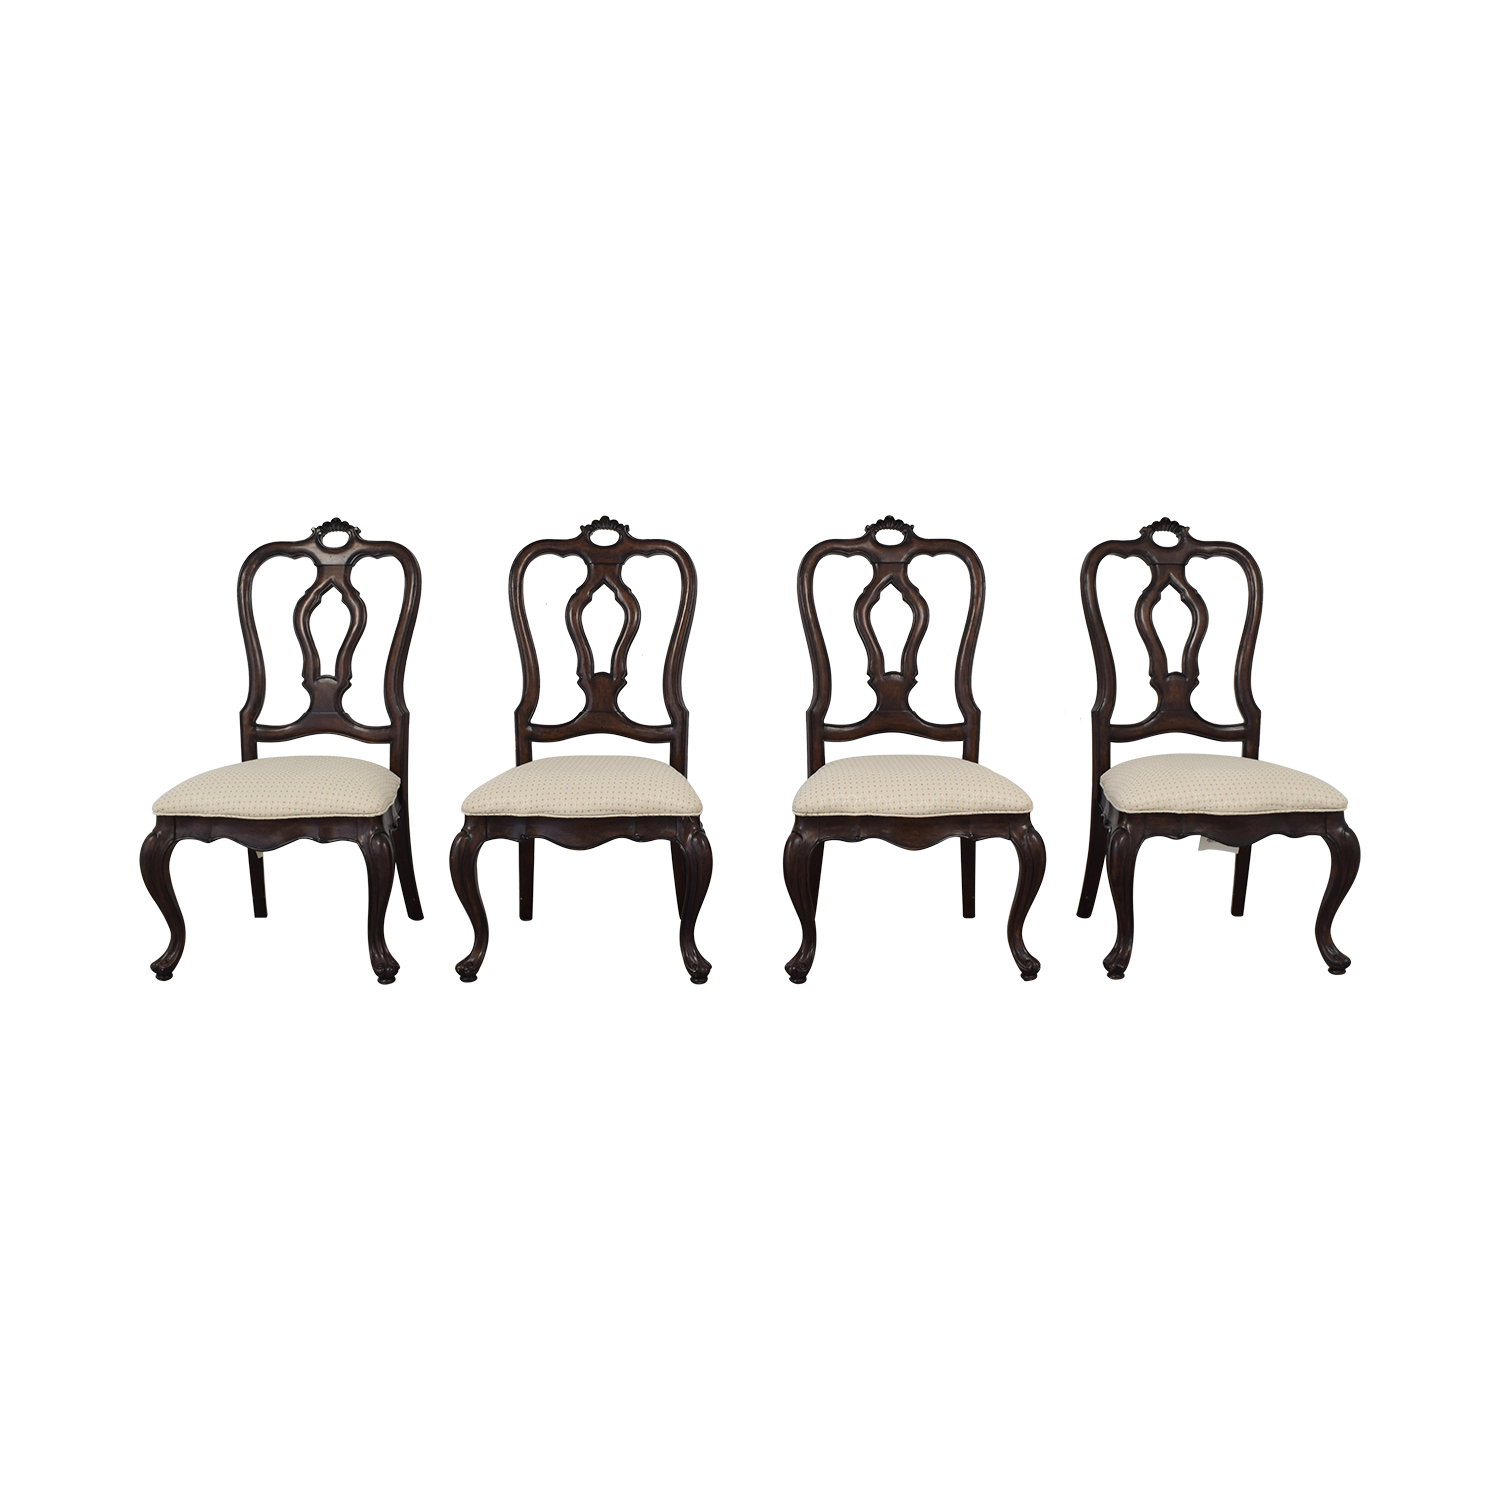 Thomasville San Martino Dining Chairs / Dining Chairs